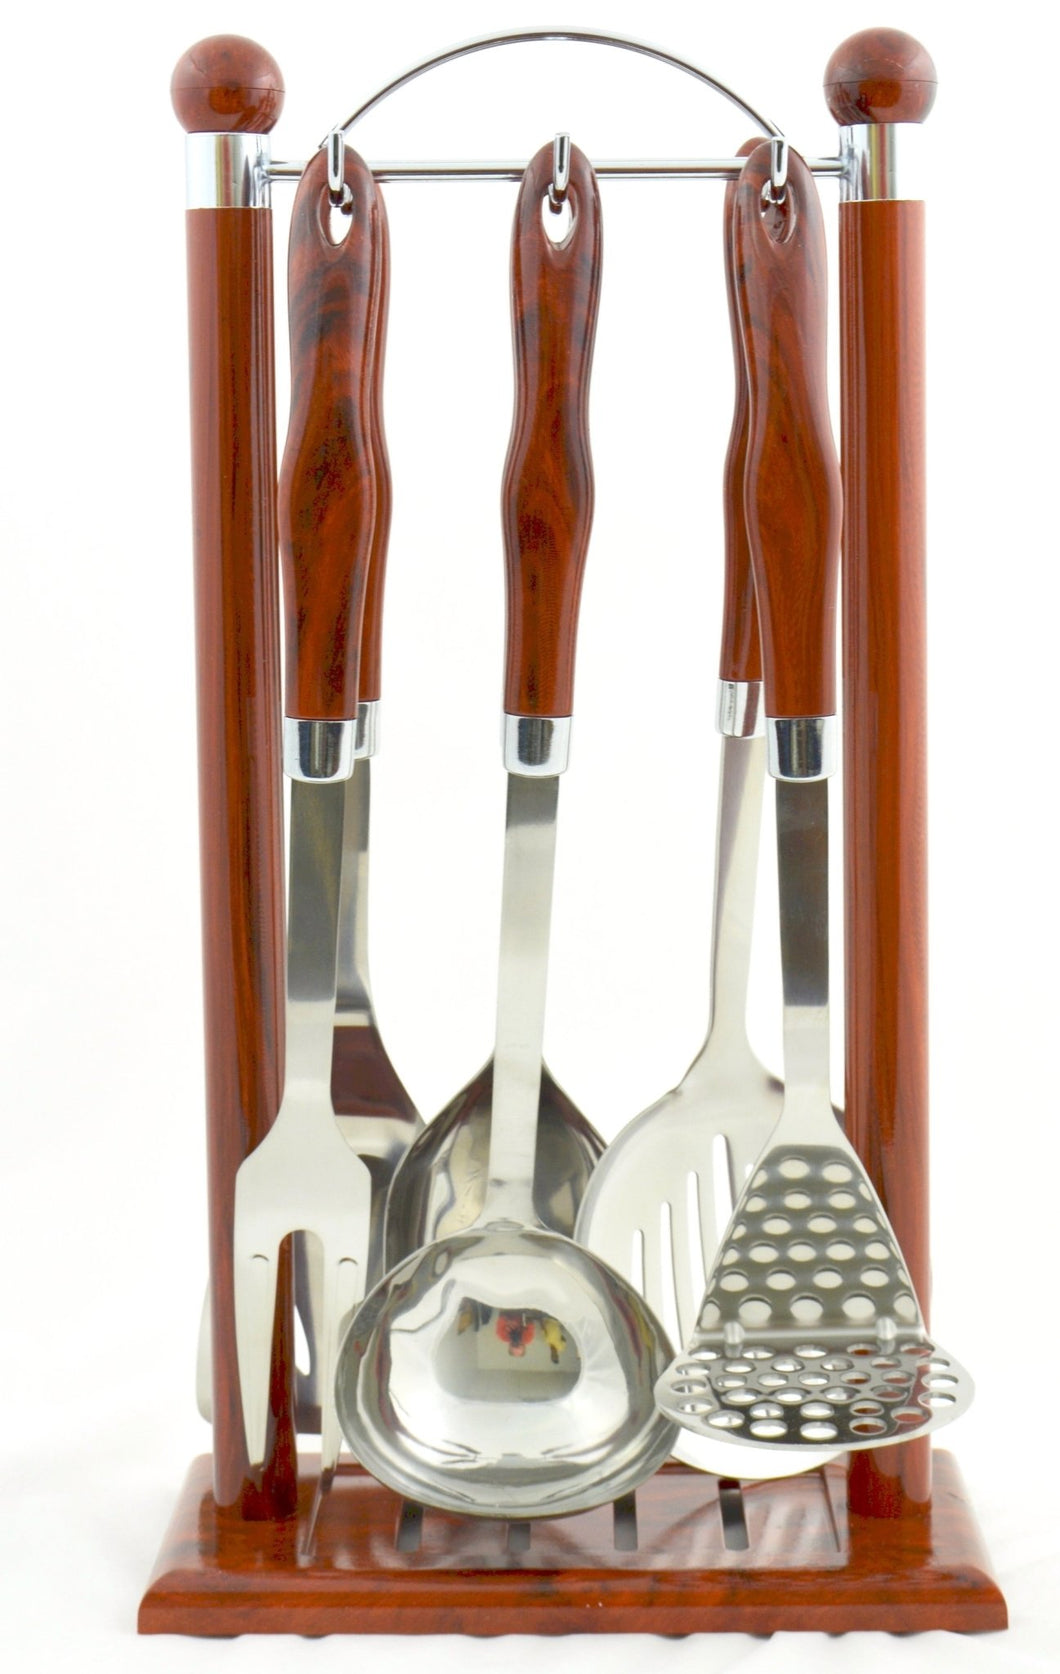 Kitchen Spoons Set with Wooden Design Hanging Stand - Nature Home Decor